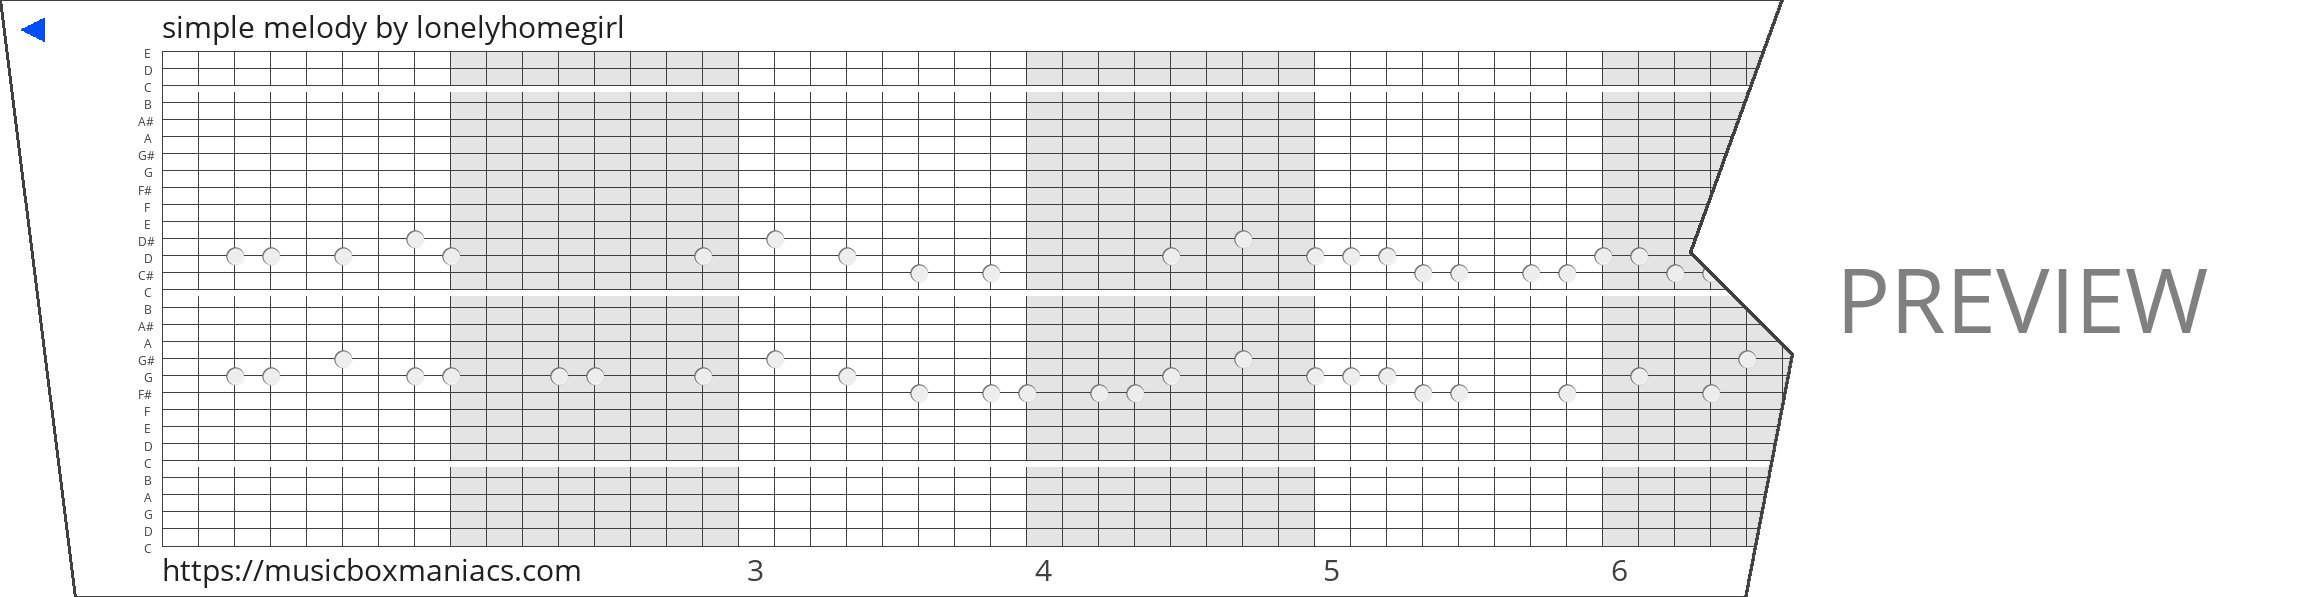 simple melody 30 note music box paper strip